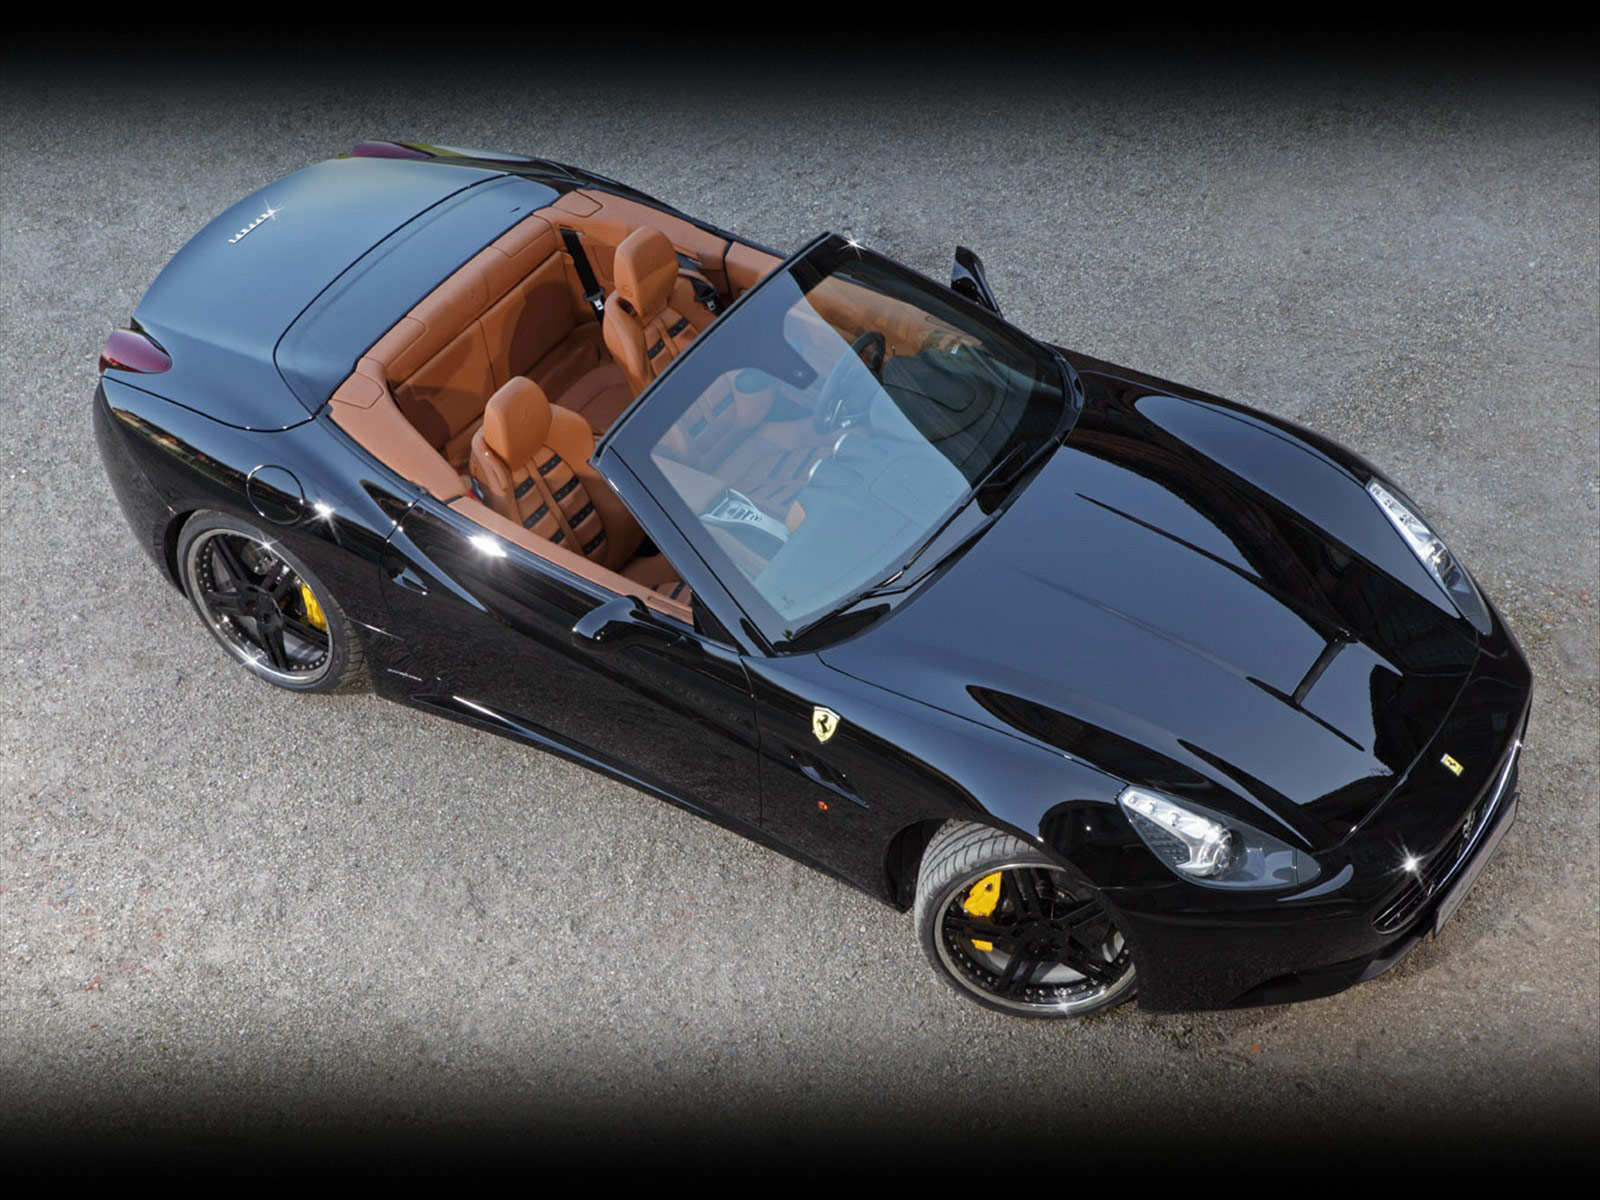 http://4.bp.blogspot.com/-uaIkEt6EacE/TsnOXi4Lh9I/AAAAAAAAEAs/G_2XE0_A3WQ/s1600/2009_edo_ferrari_california_car-pictures-download_6.jpg